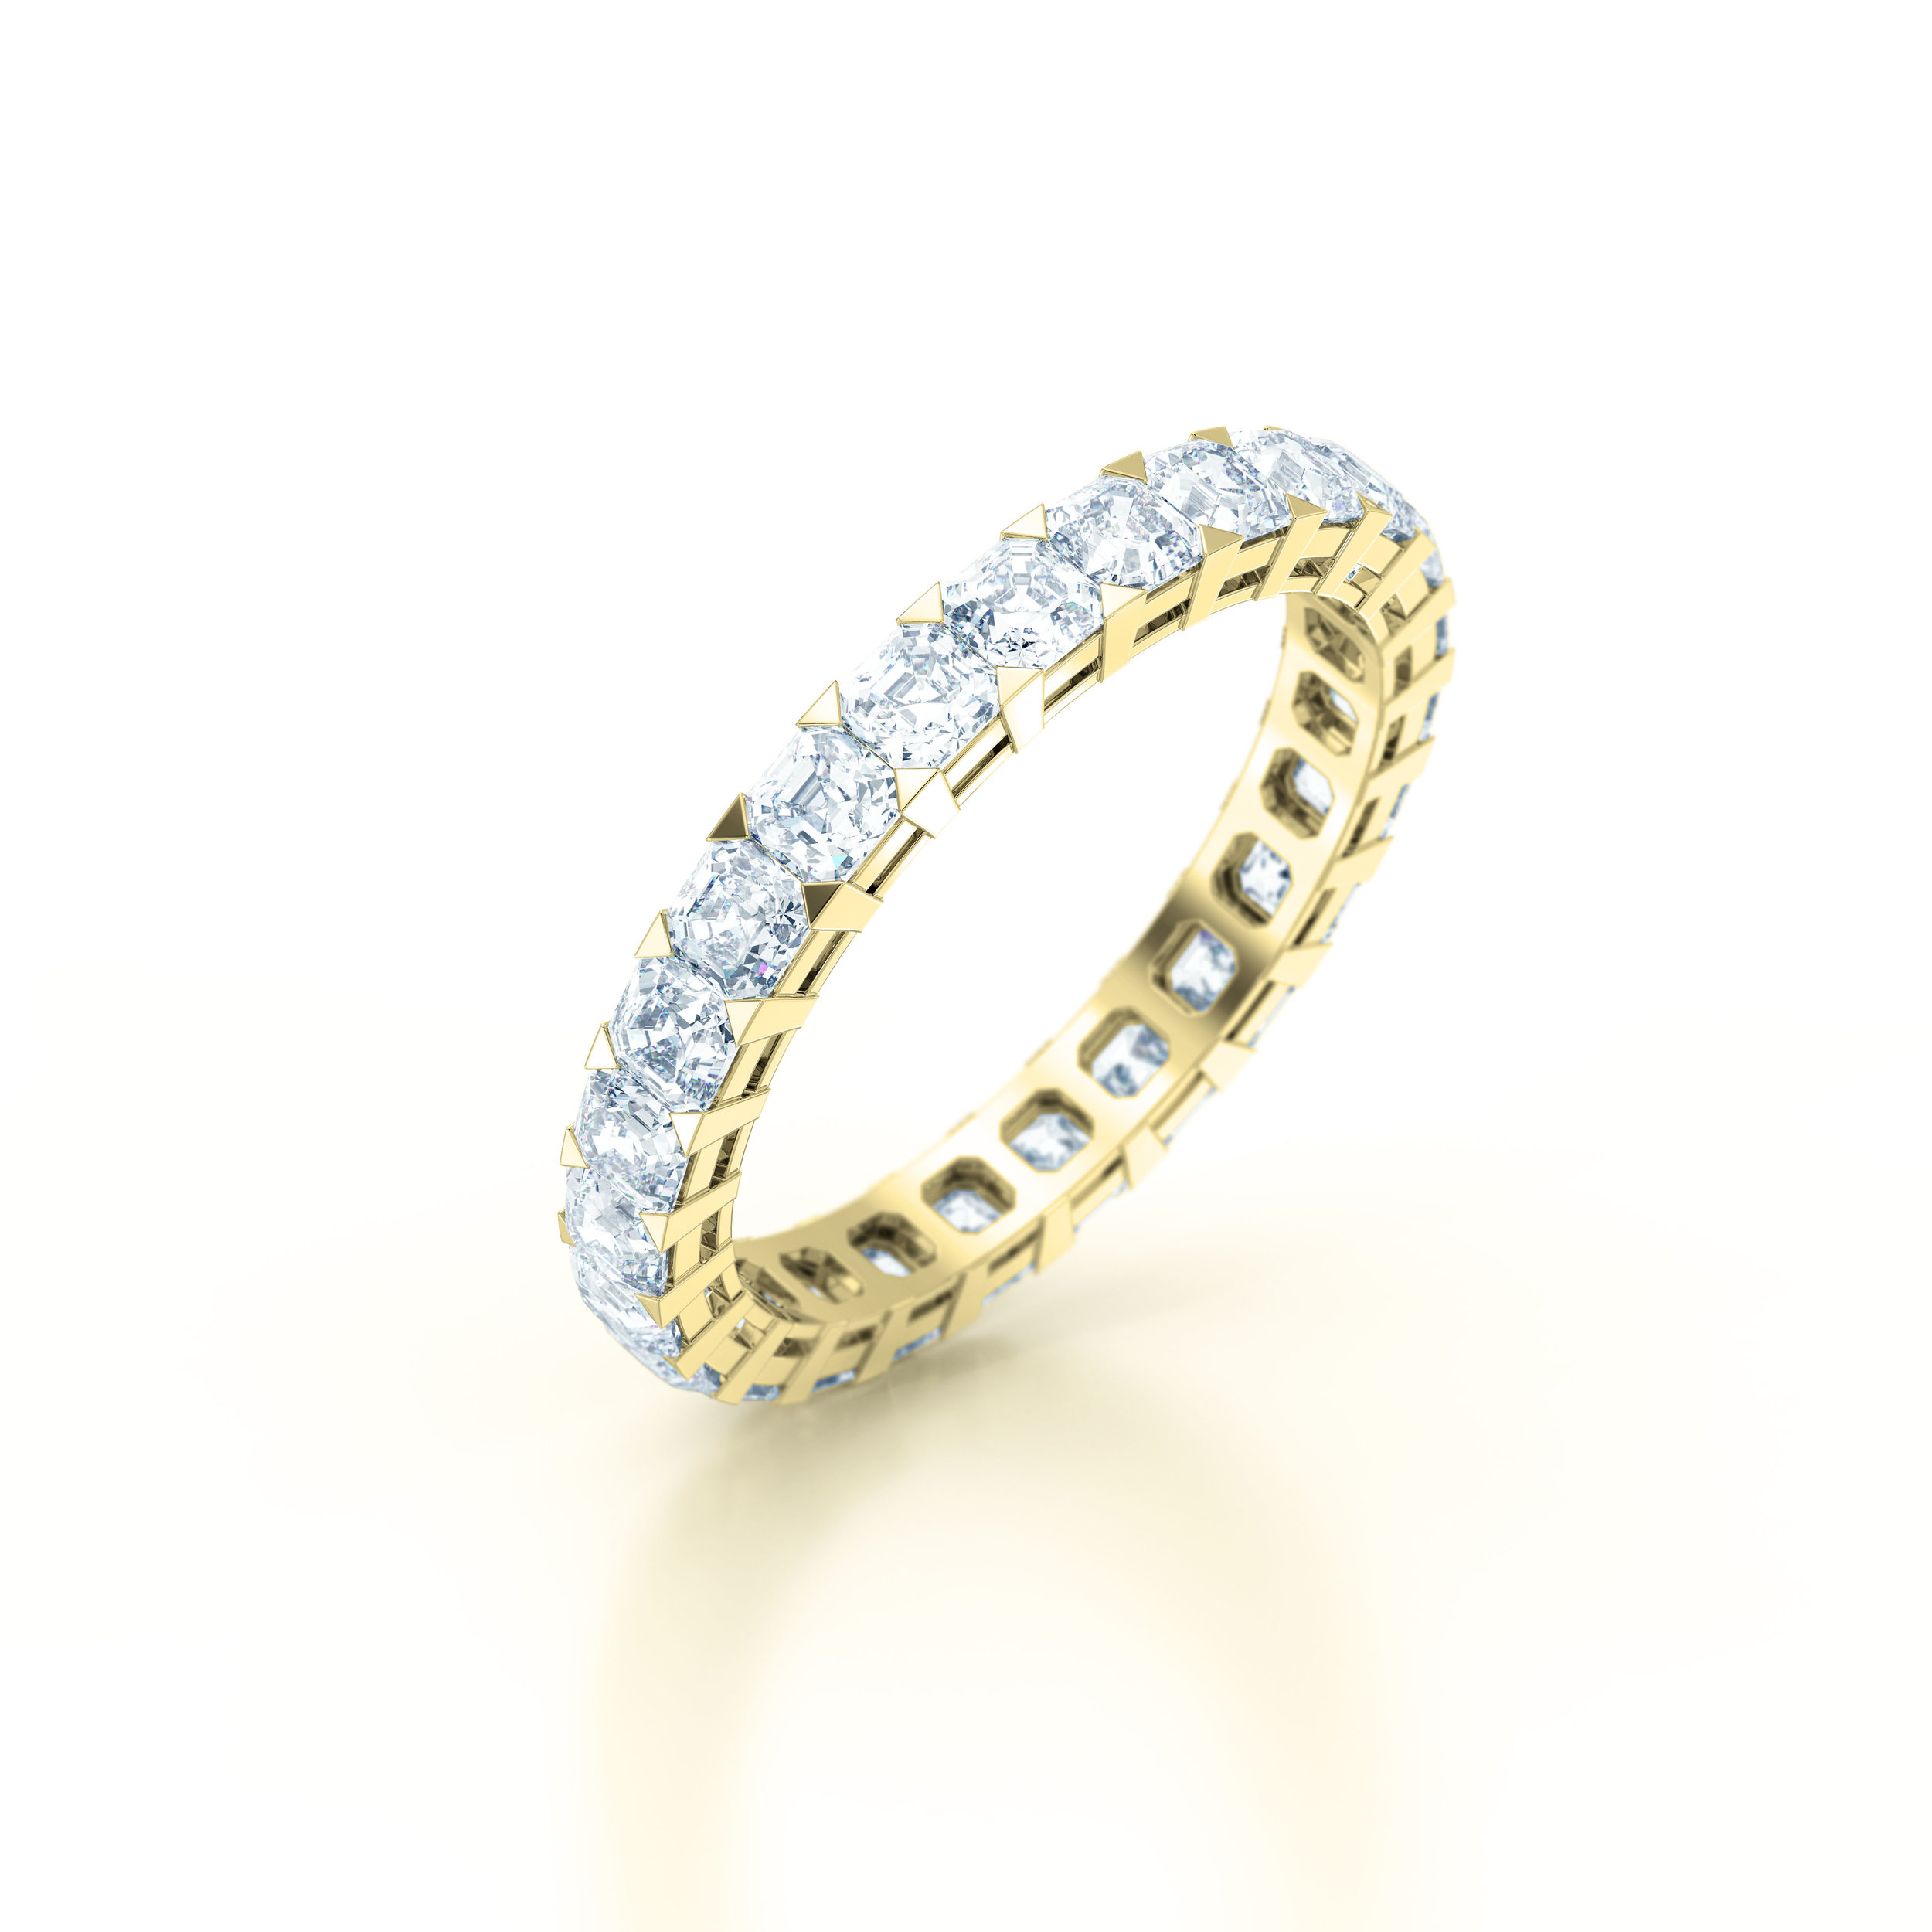 Asscher Cut Shared Claw Eternity Ring | Hatton Garden | London